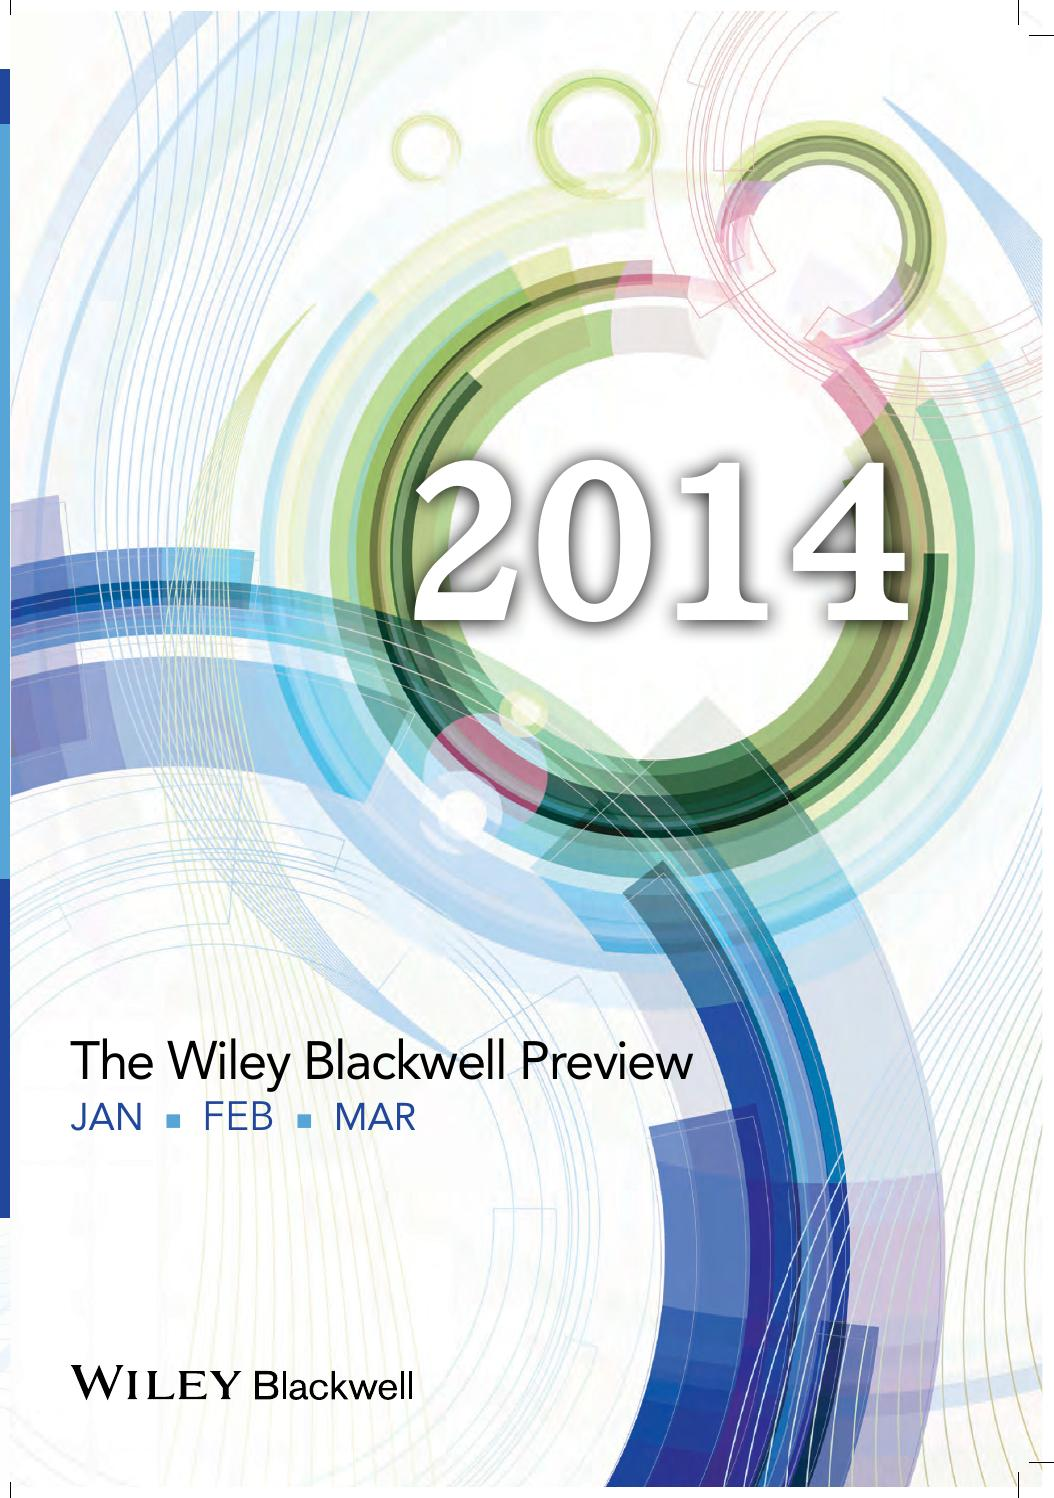 Wiley Blackwell Preview Catalog Jan Feb Mar 2014 by Wiley India - issuu